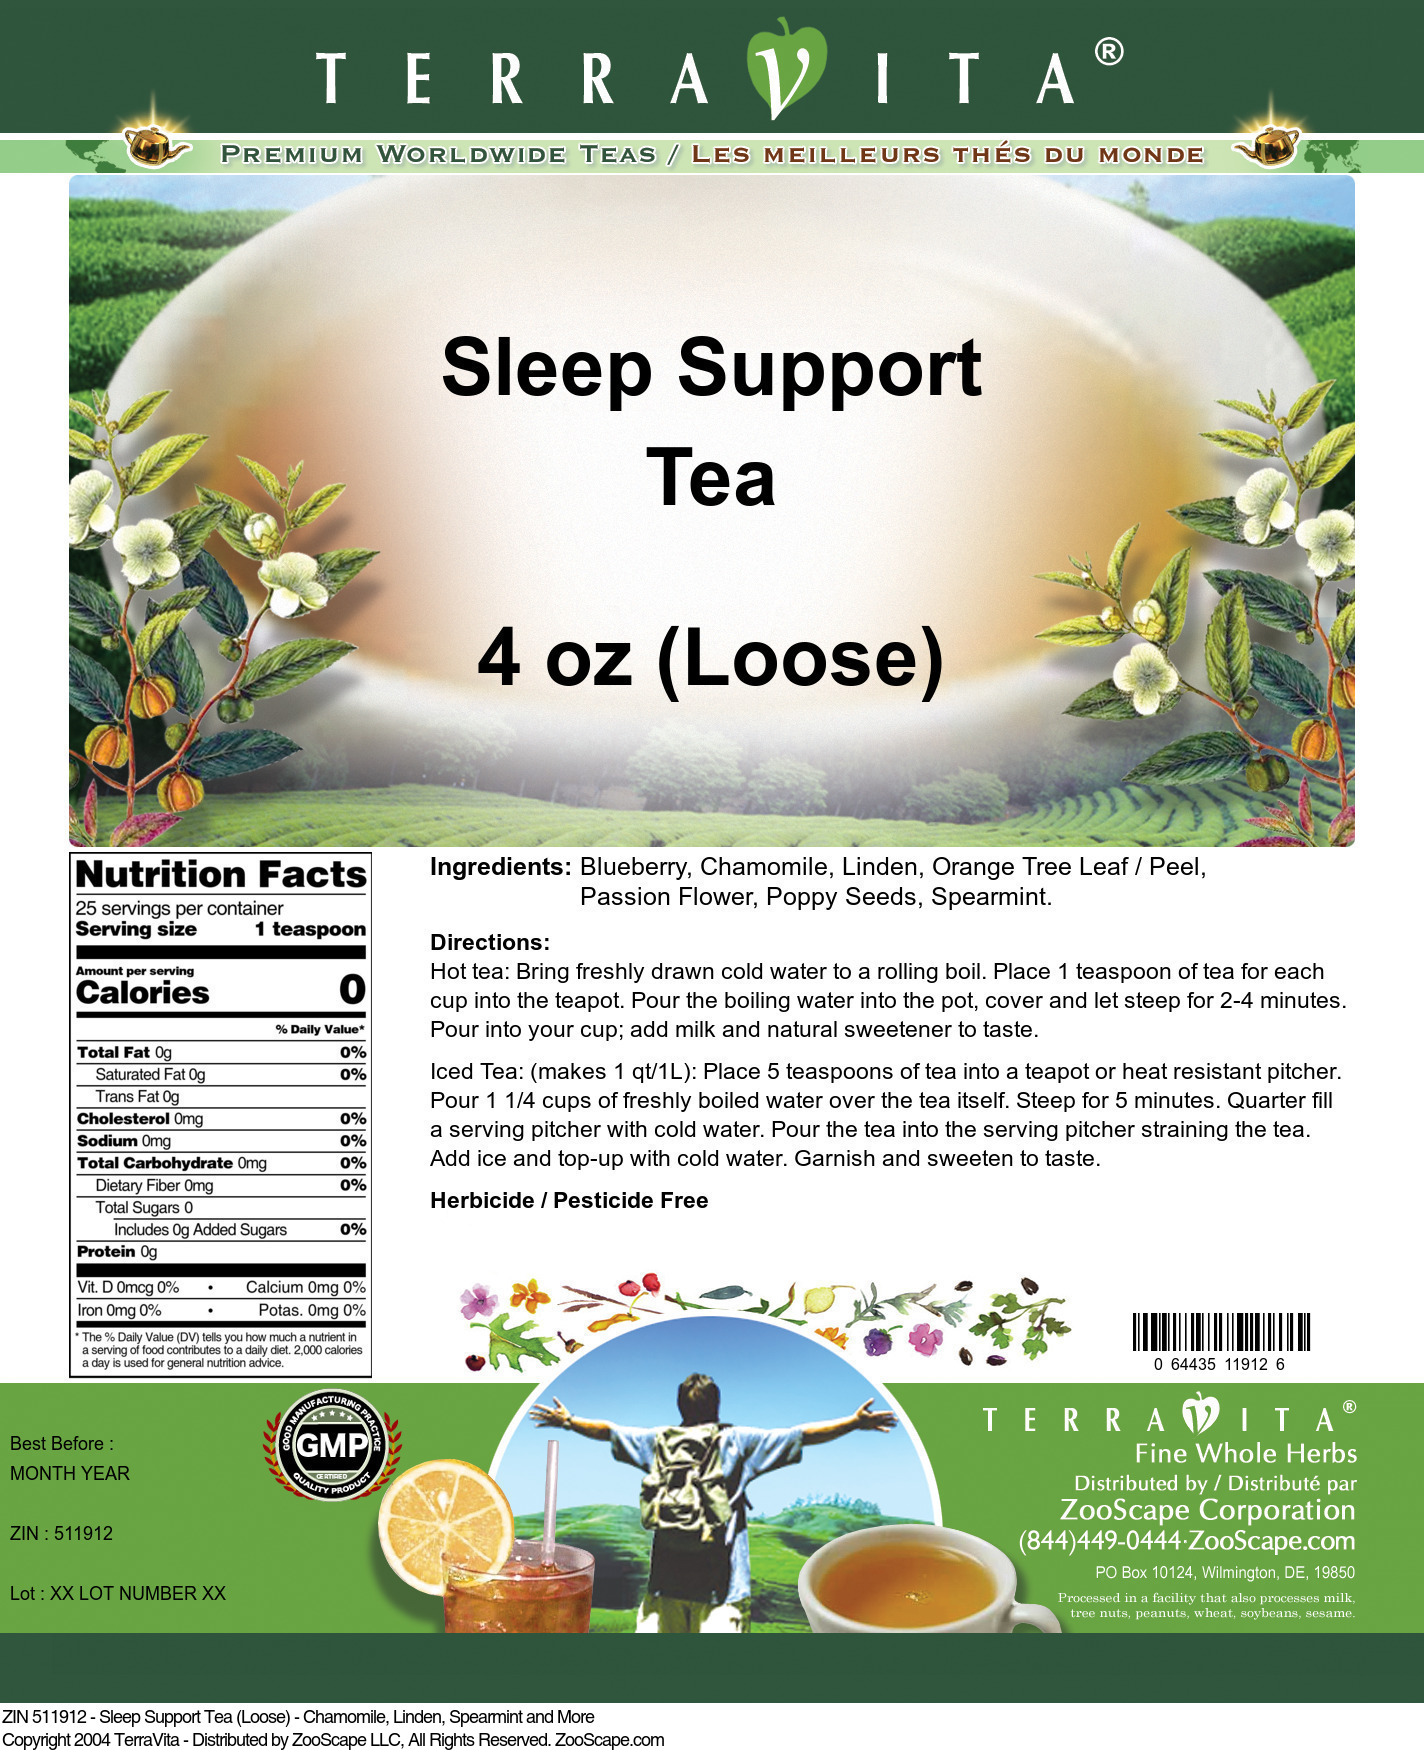 Sleep Support Tea (Loose) - Chamomile, Linden, Spearmint and More